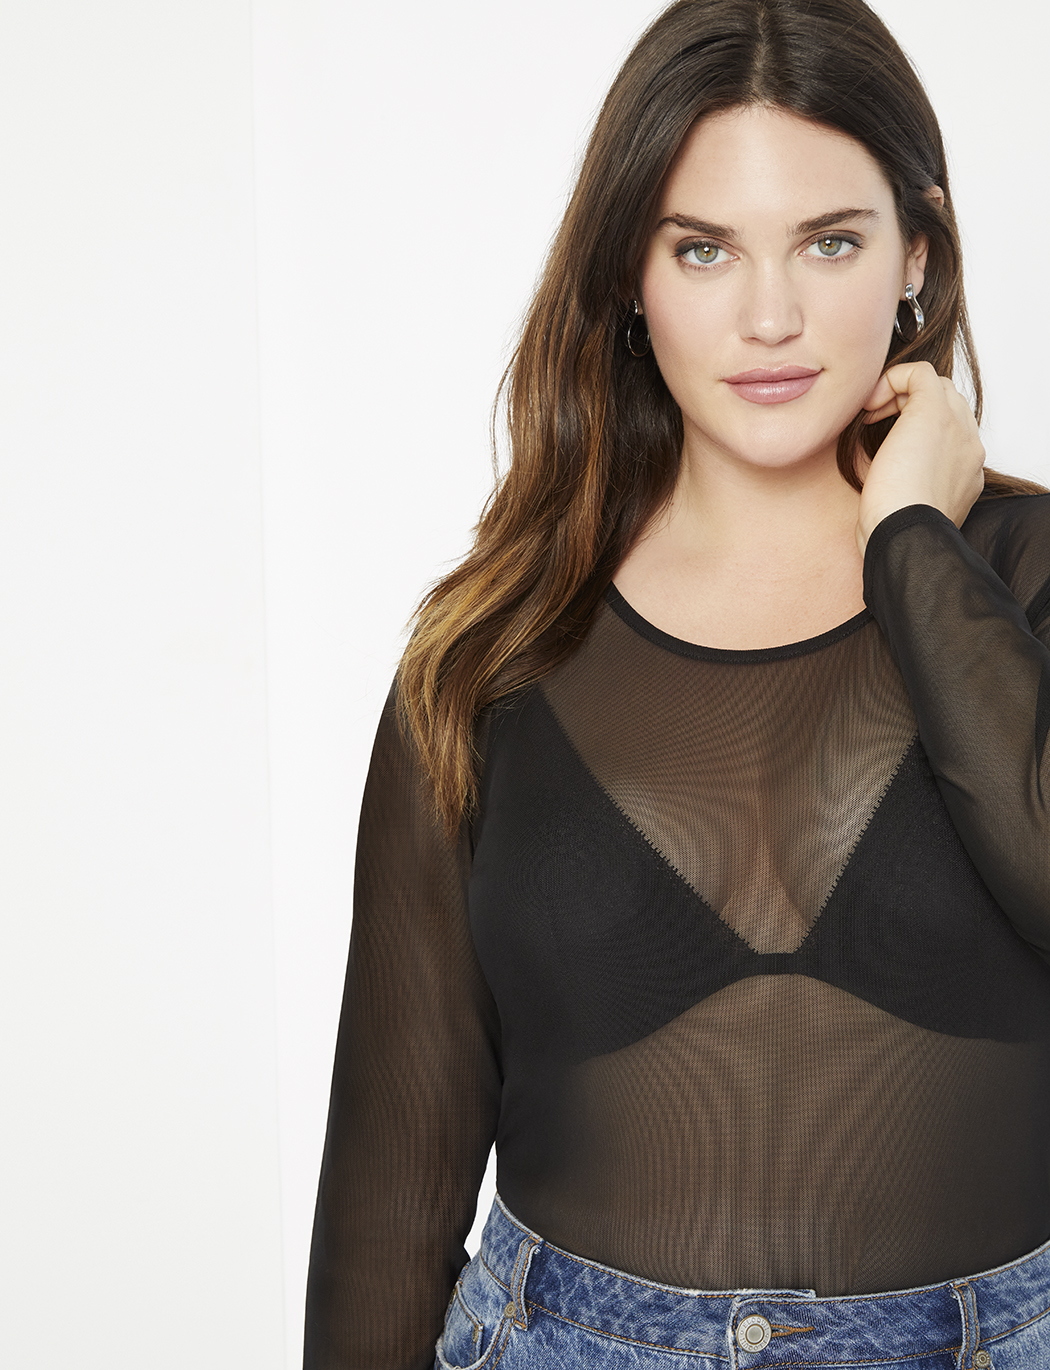 How to Wear a Mesh Bodysuit How to Wear a Mesh Bodysuit new pictures